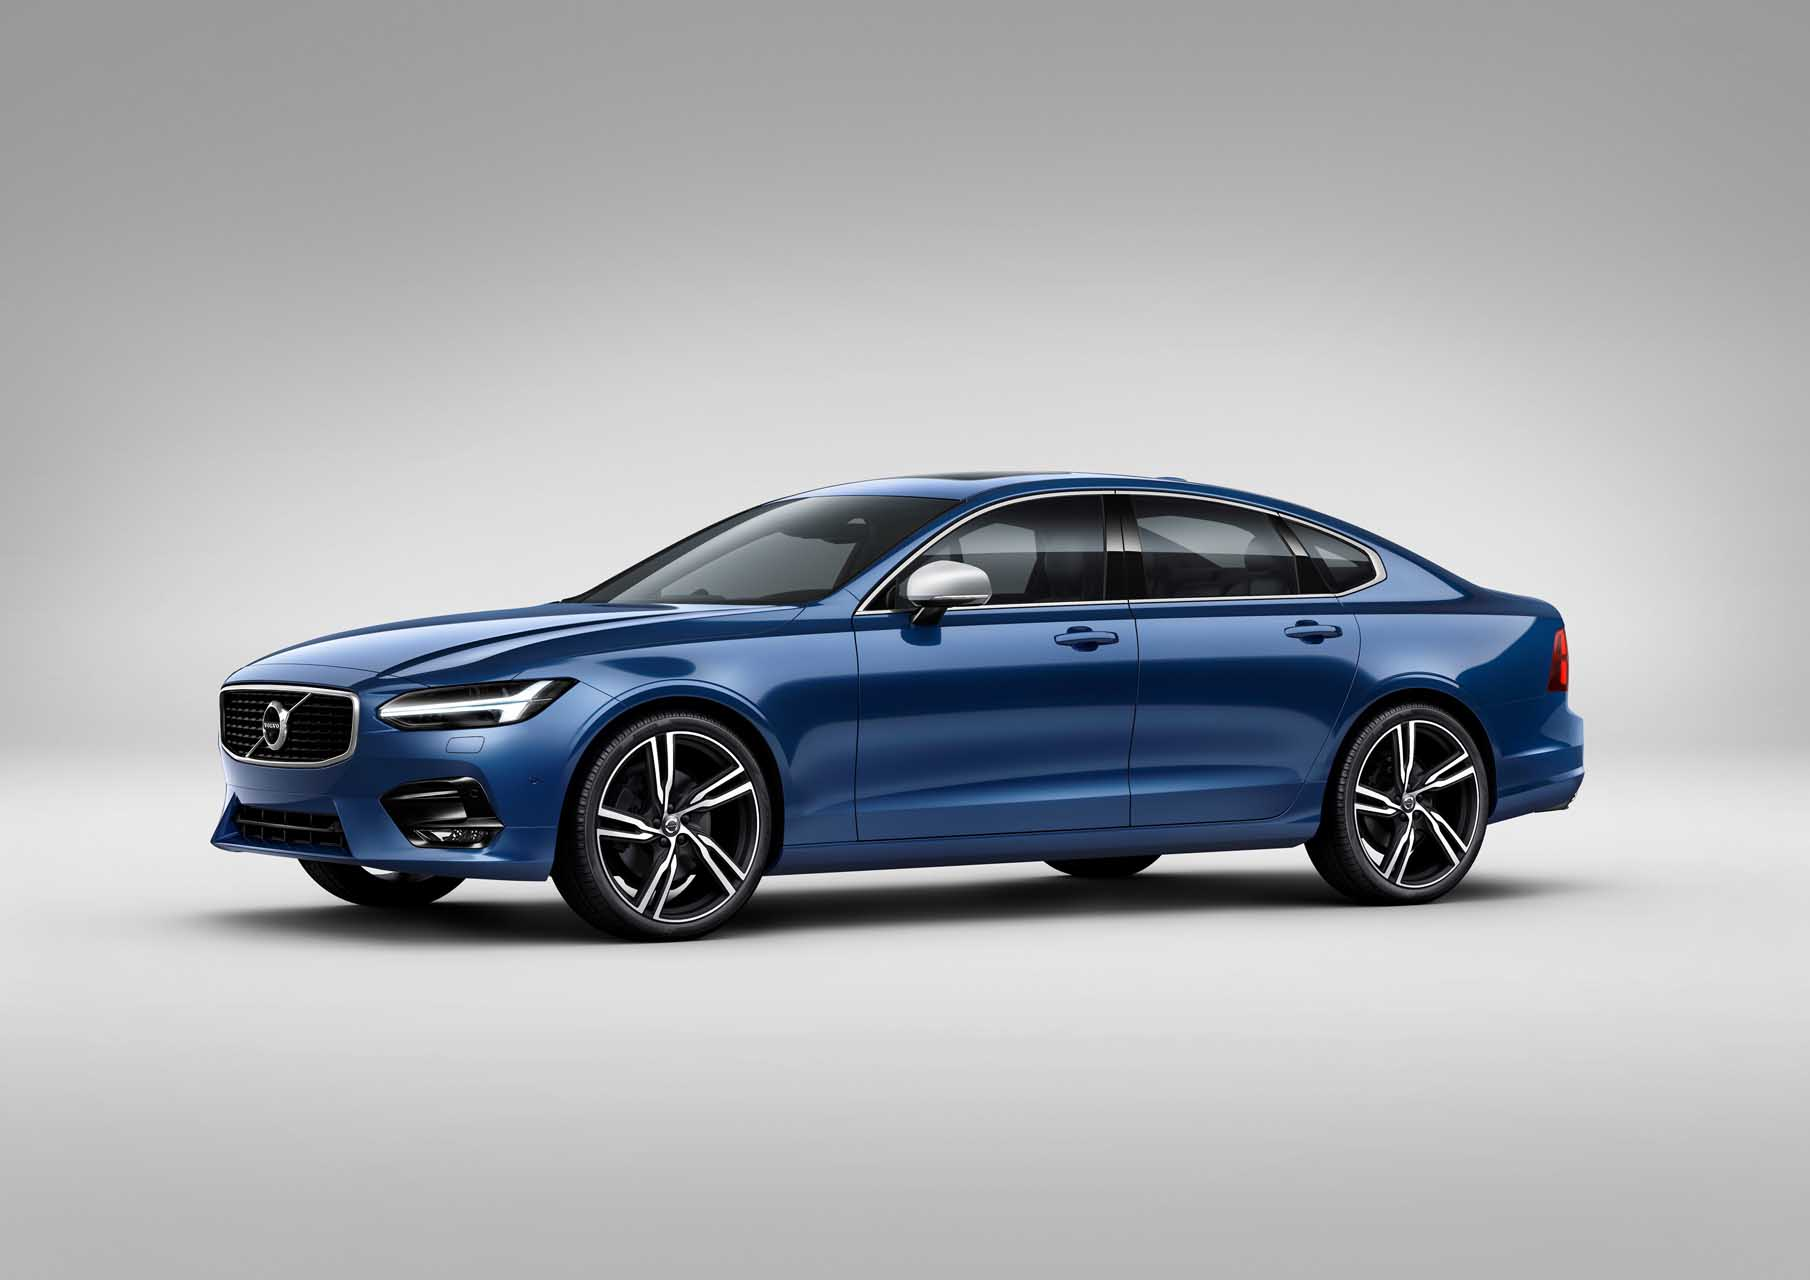 2020 volvo s90 review ratings specs prices and photos the car connection 2020 volvo s90 review ratings specs